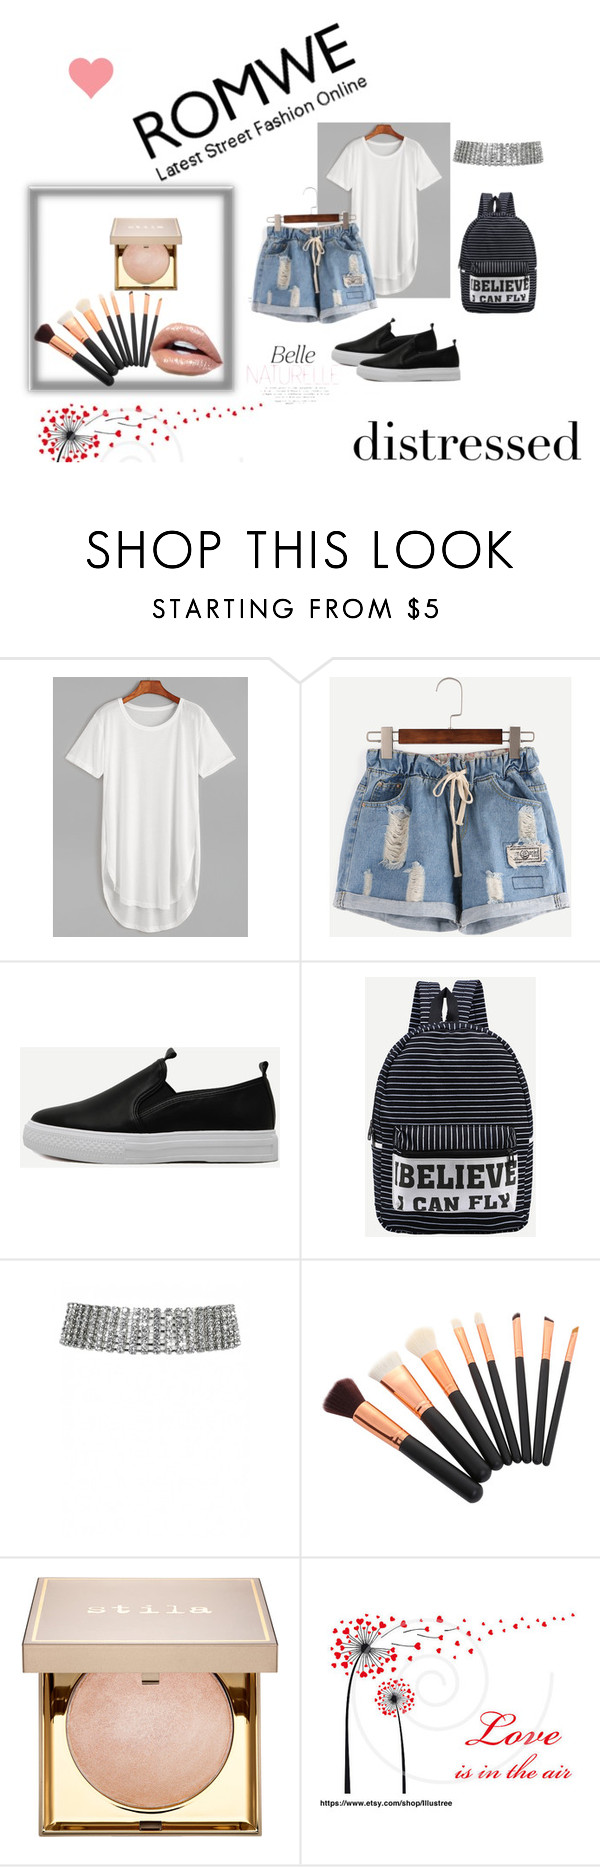 """Bez naslova #7"" by flawsome32 ❤ liked on Polyvore featuring Stila"